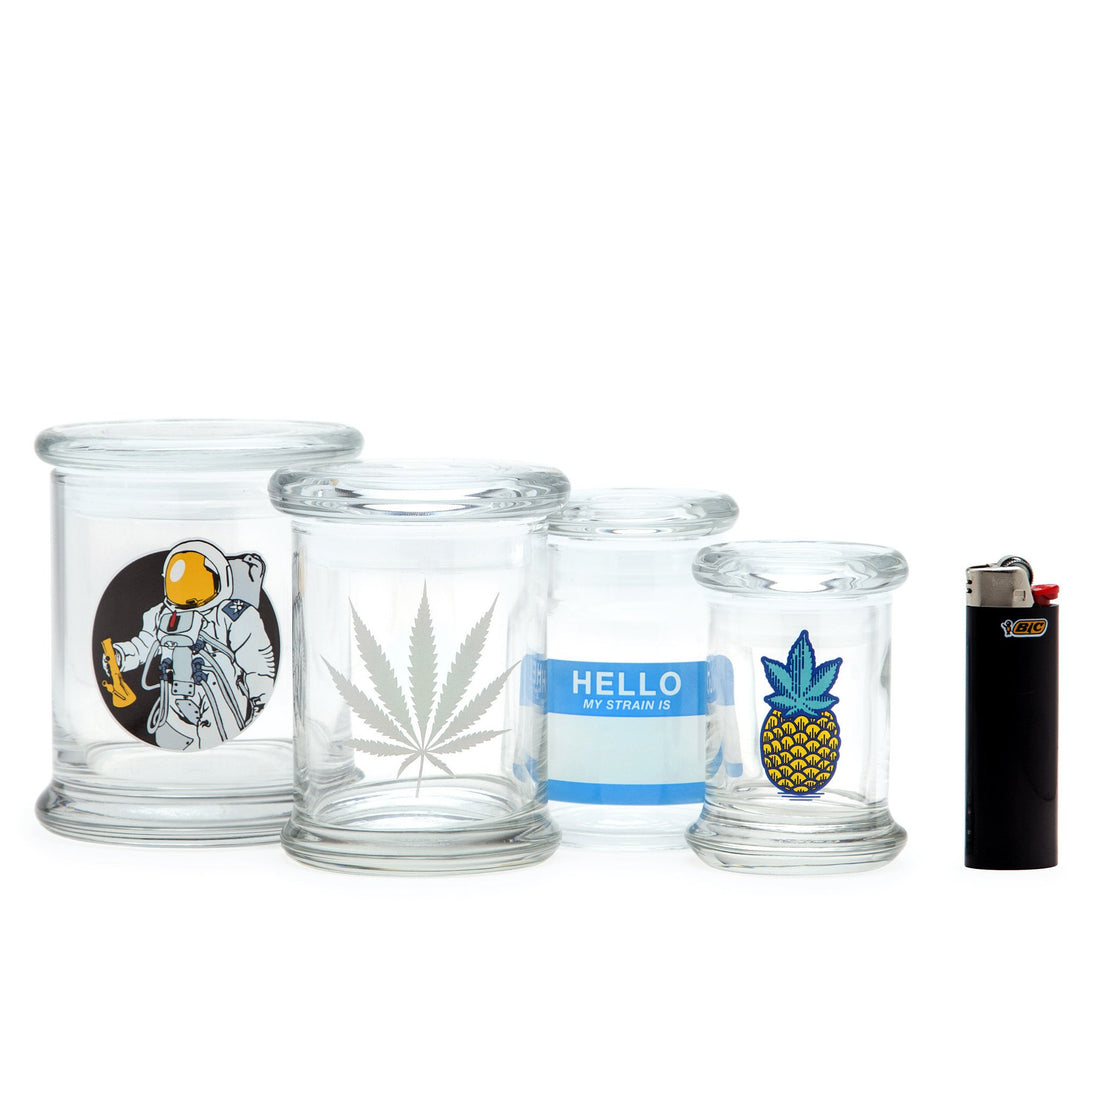 X-Small Pop-Top - Shroom Vision - 420 Science - The most trusted online smoke shop.